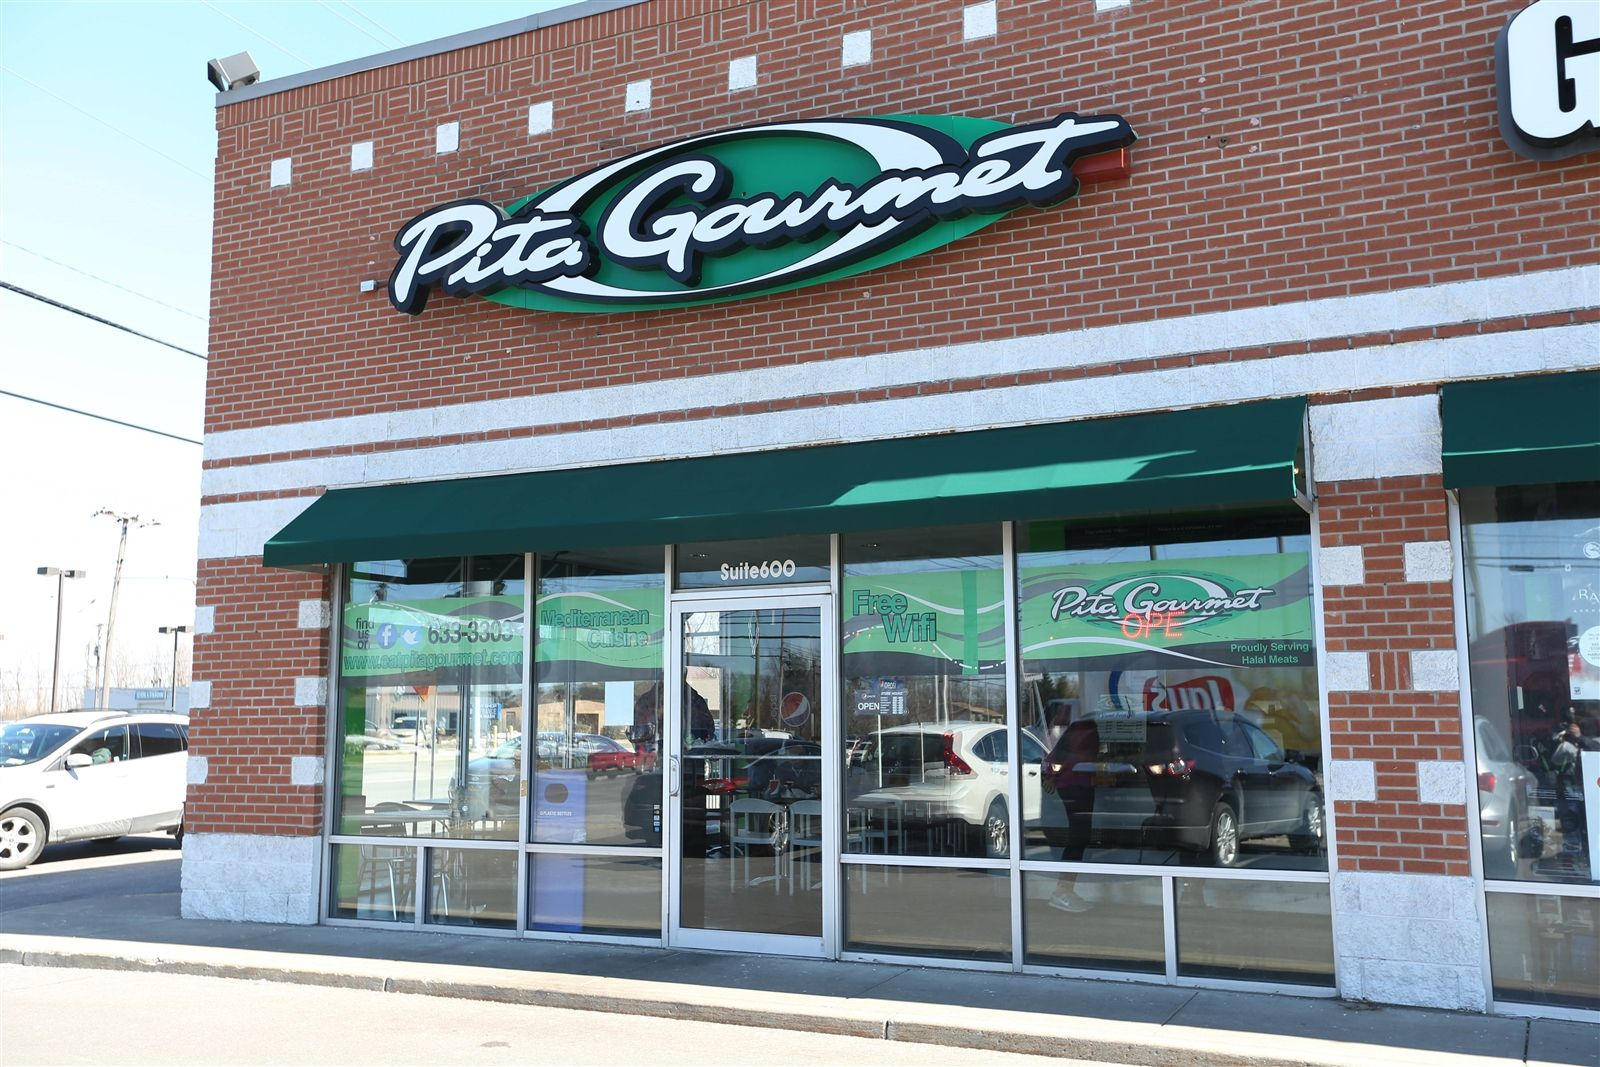 Pita Gourmet  at 6733 Transit Rd. in Lancaster offers authentic Greek and Mediterranean cuisine.